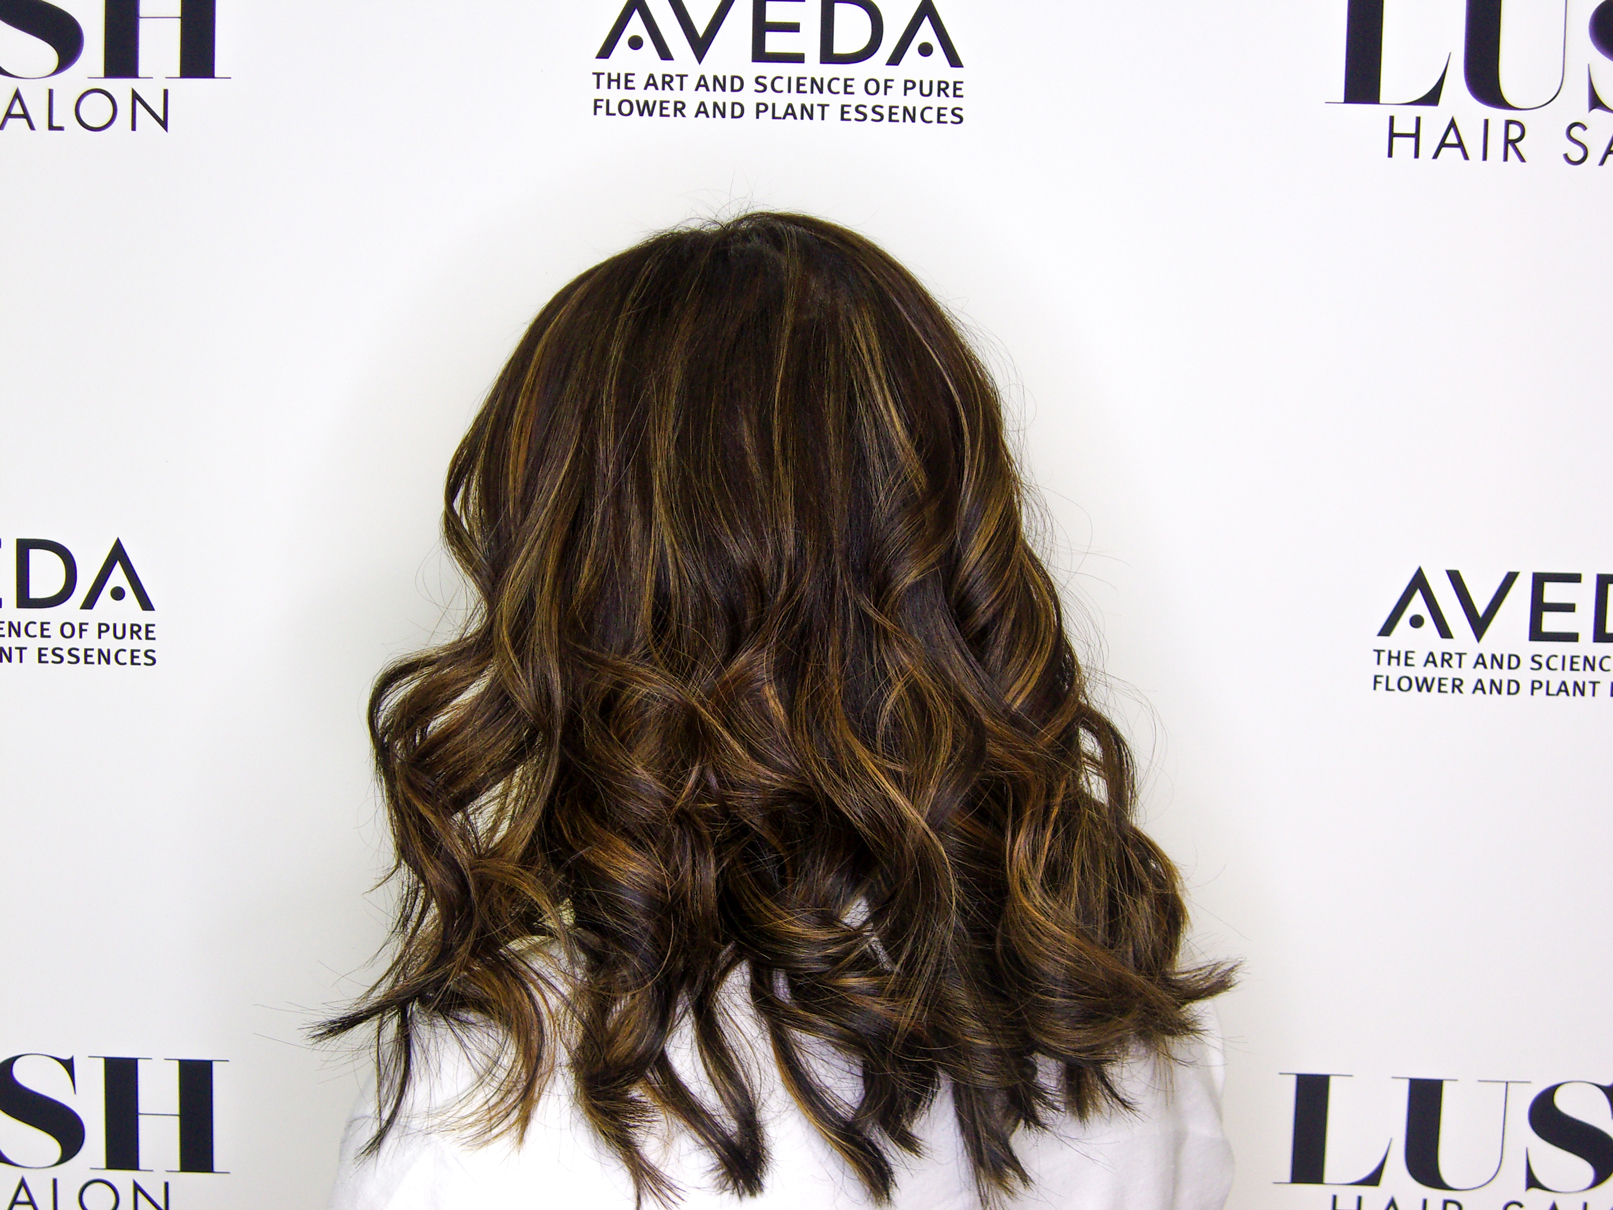 Lush-Hair-Salon-Photoshoot-09.jpg